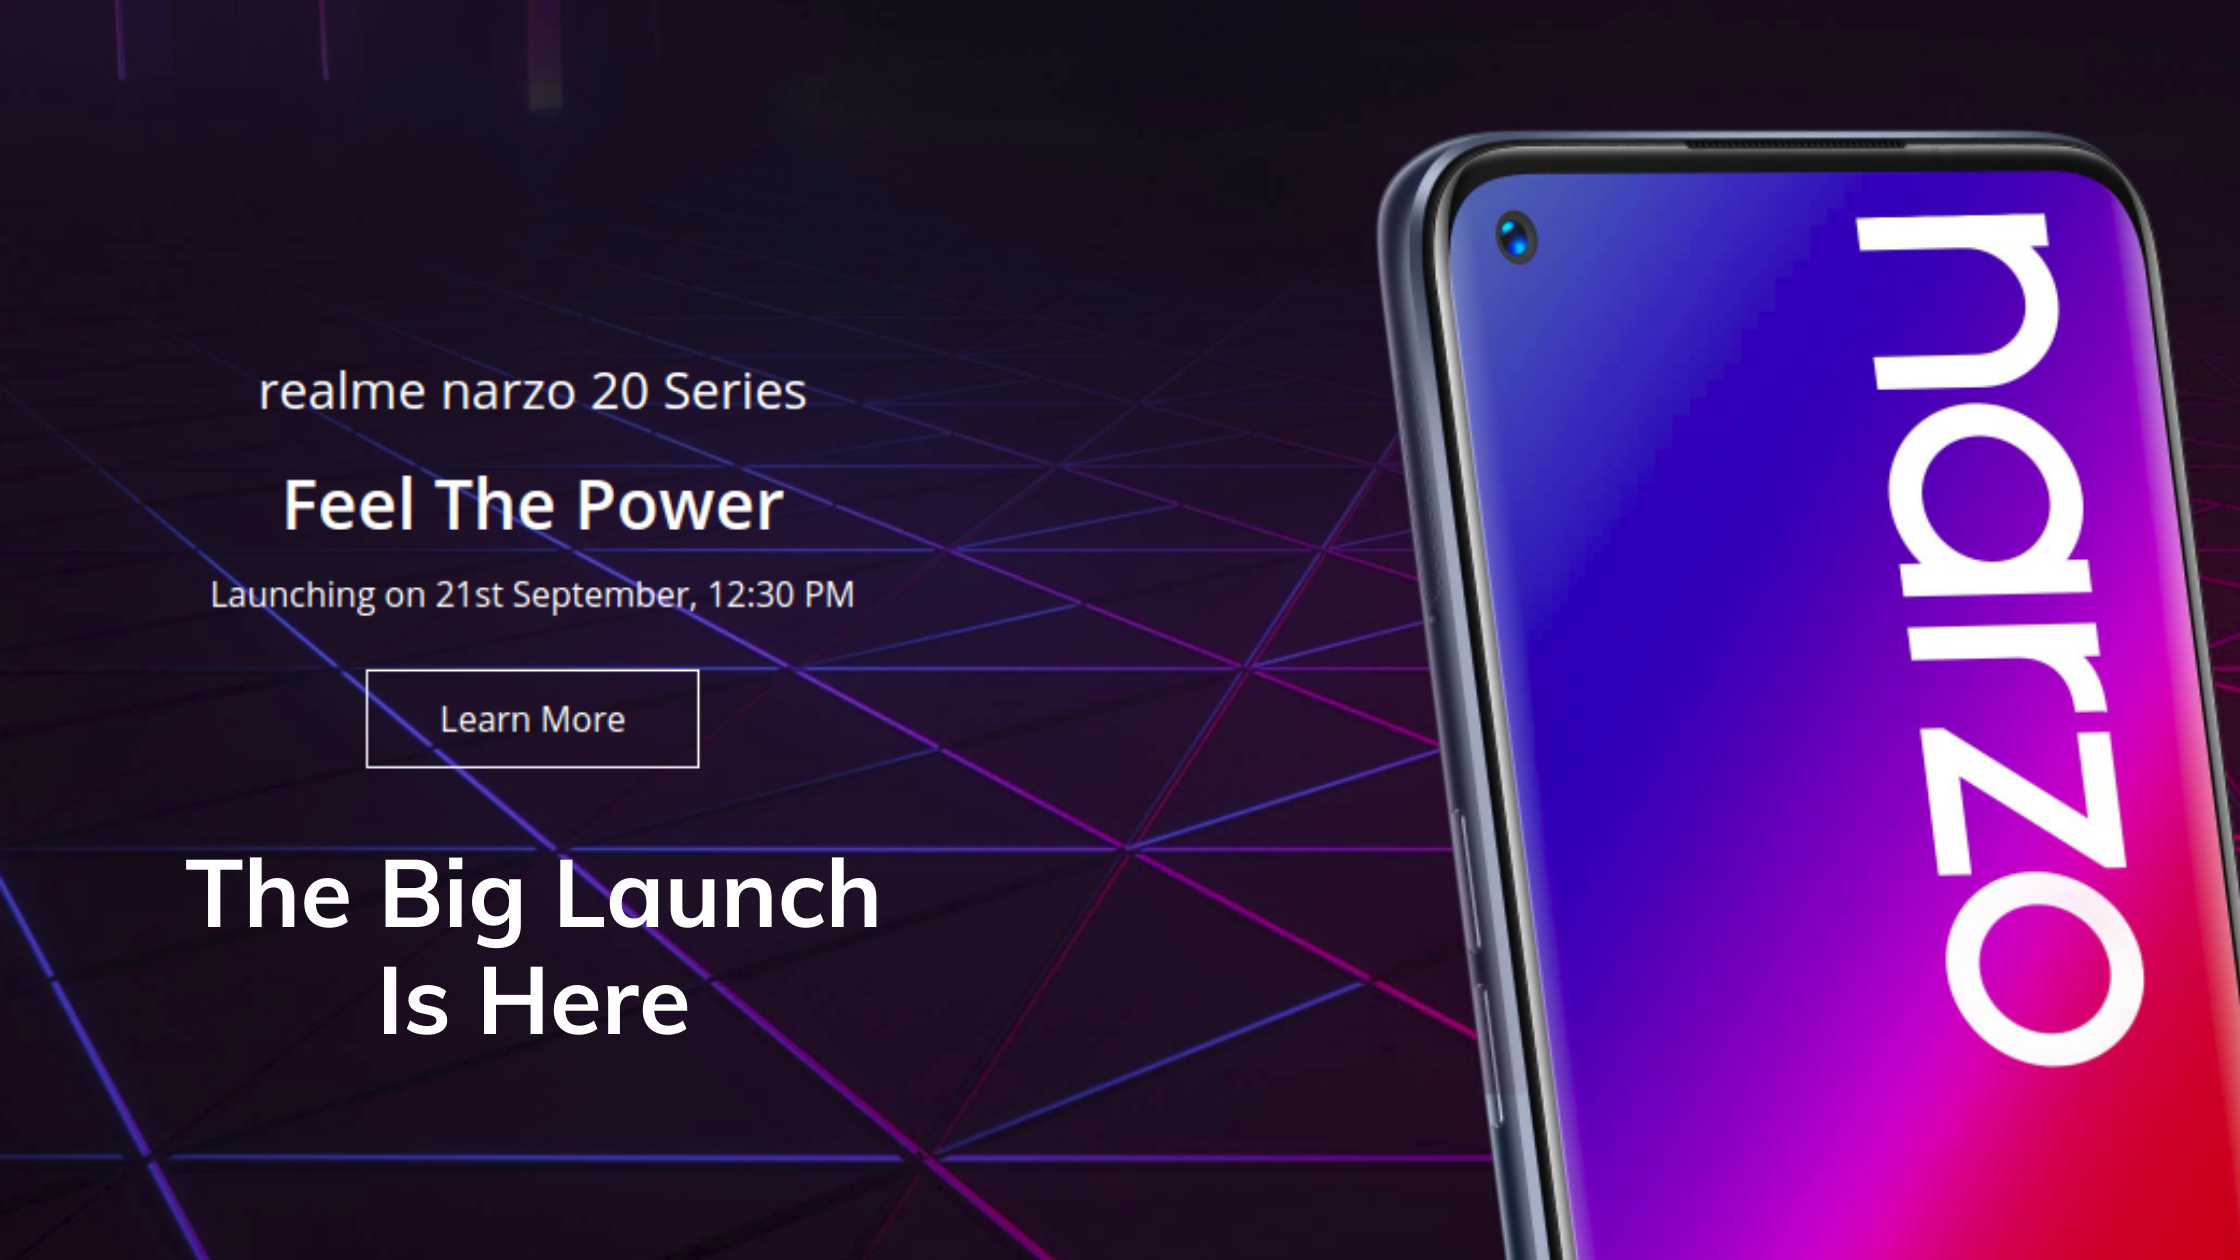 Realme Narzo 20 Series Launch in India - Arriving On September 21